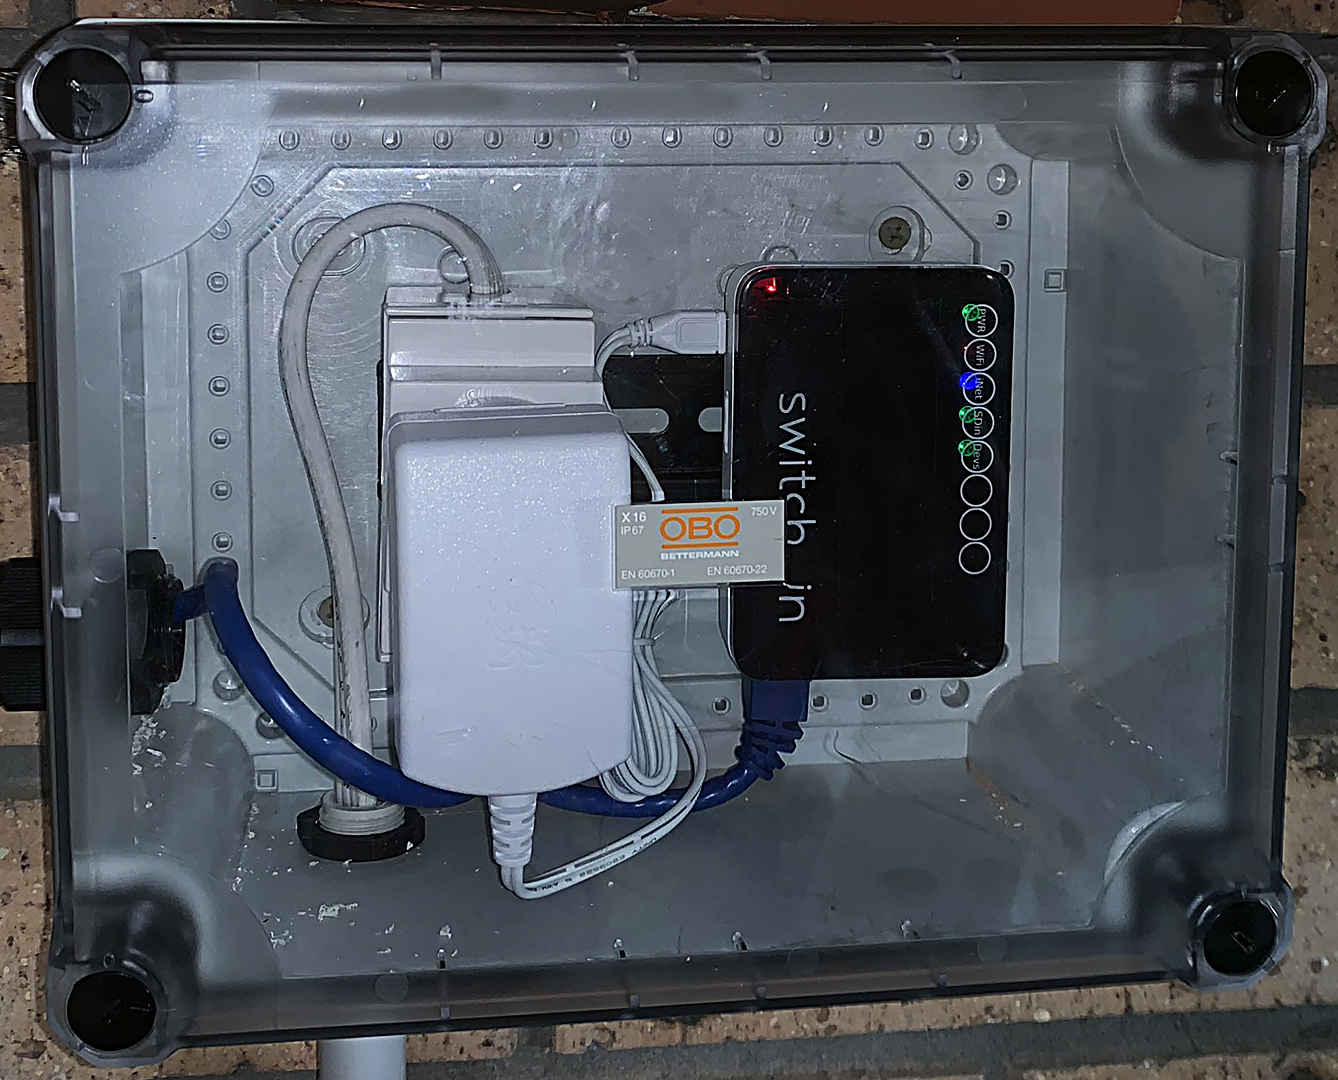 SwitchDin Droplet & power supply in a separate enclosure. The Droplet connects to the battery via an Ethernet cable.